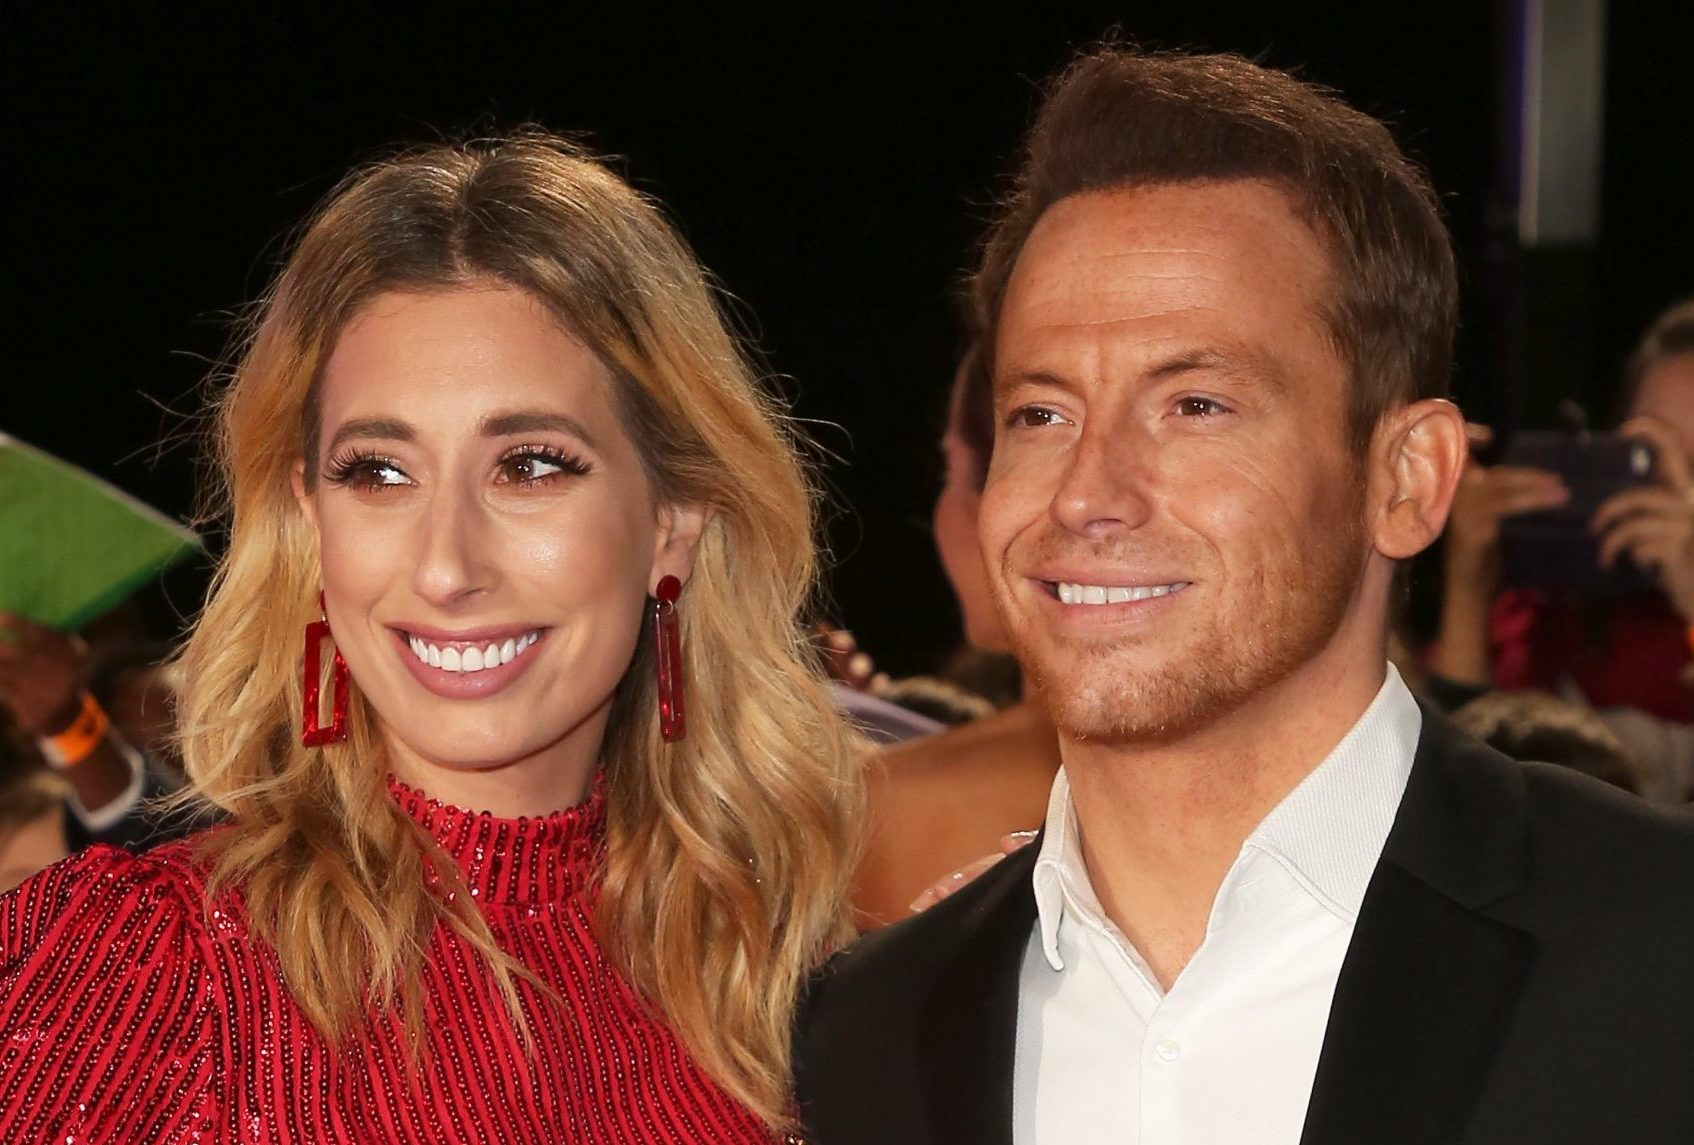 How did Stacey Solomon and Joe Swash meet? The couple were in relationships with other people